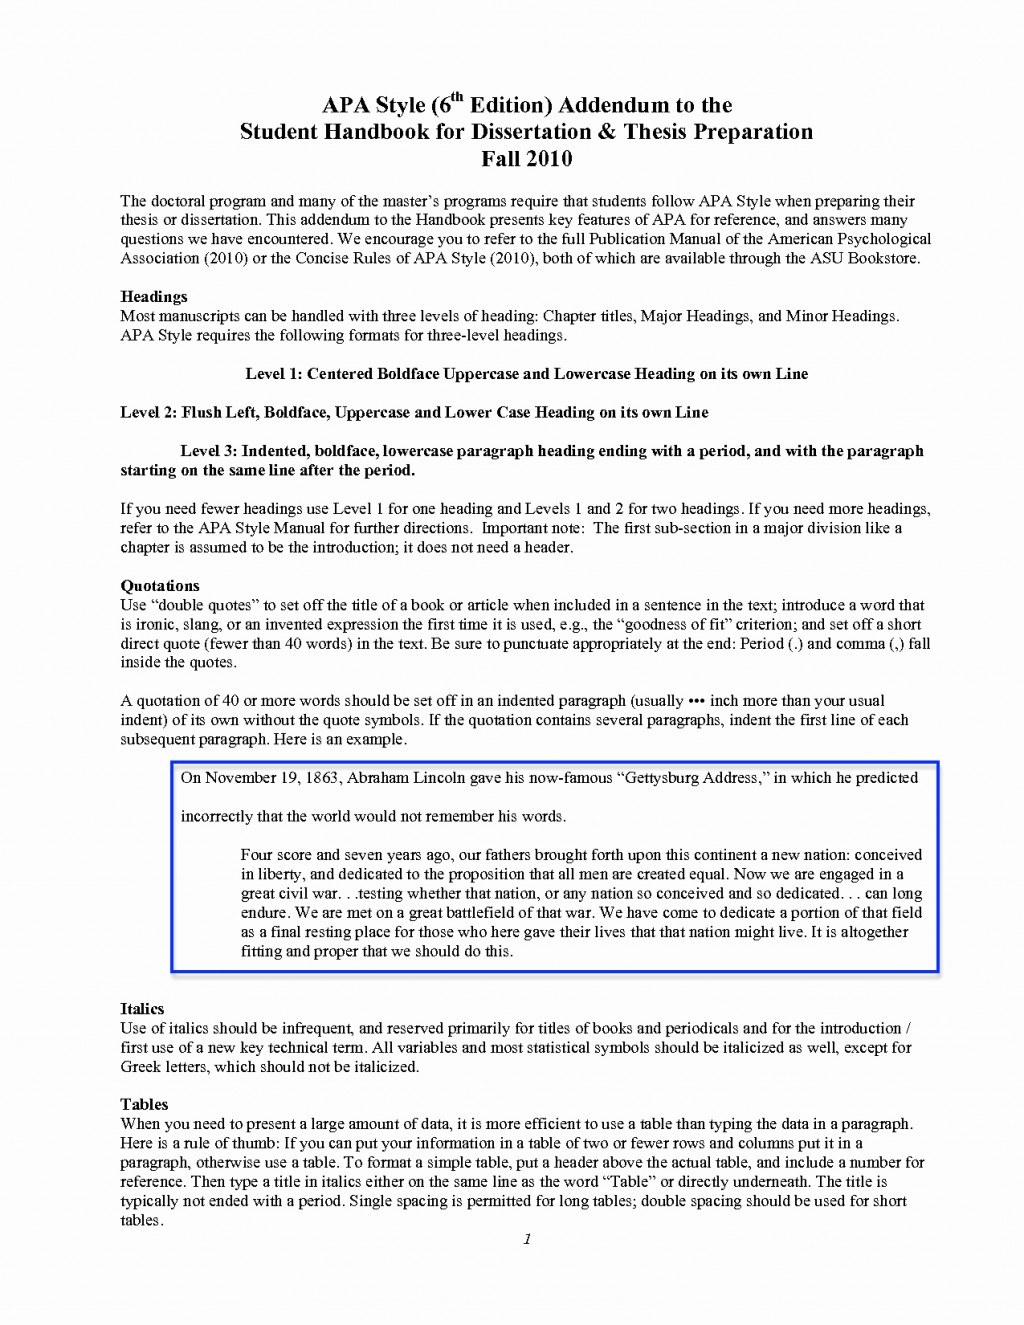 008 Apa Style Research Paper Template 6th Edition Format Best Of Sample Imposing Example Large